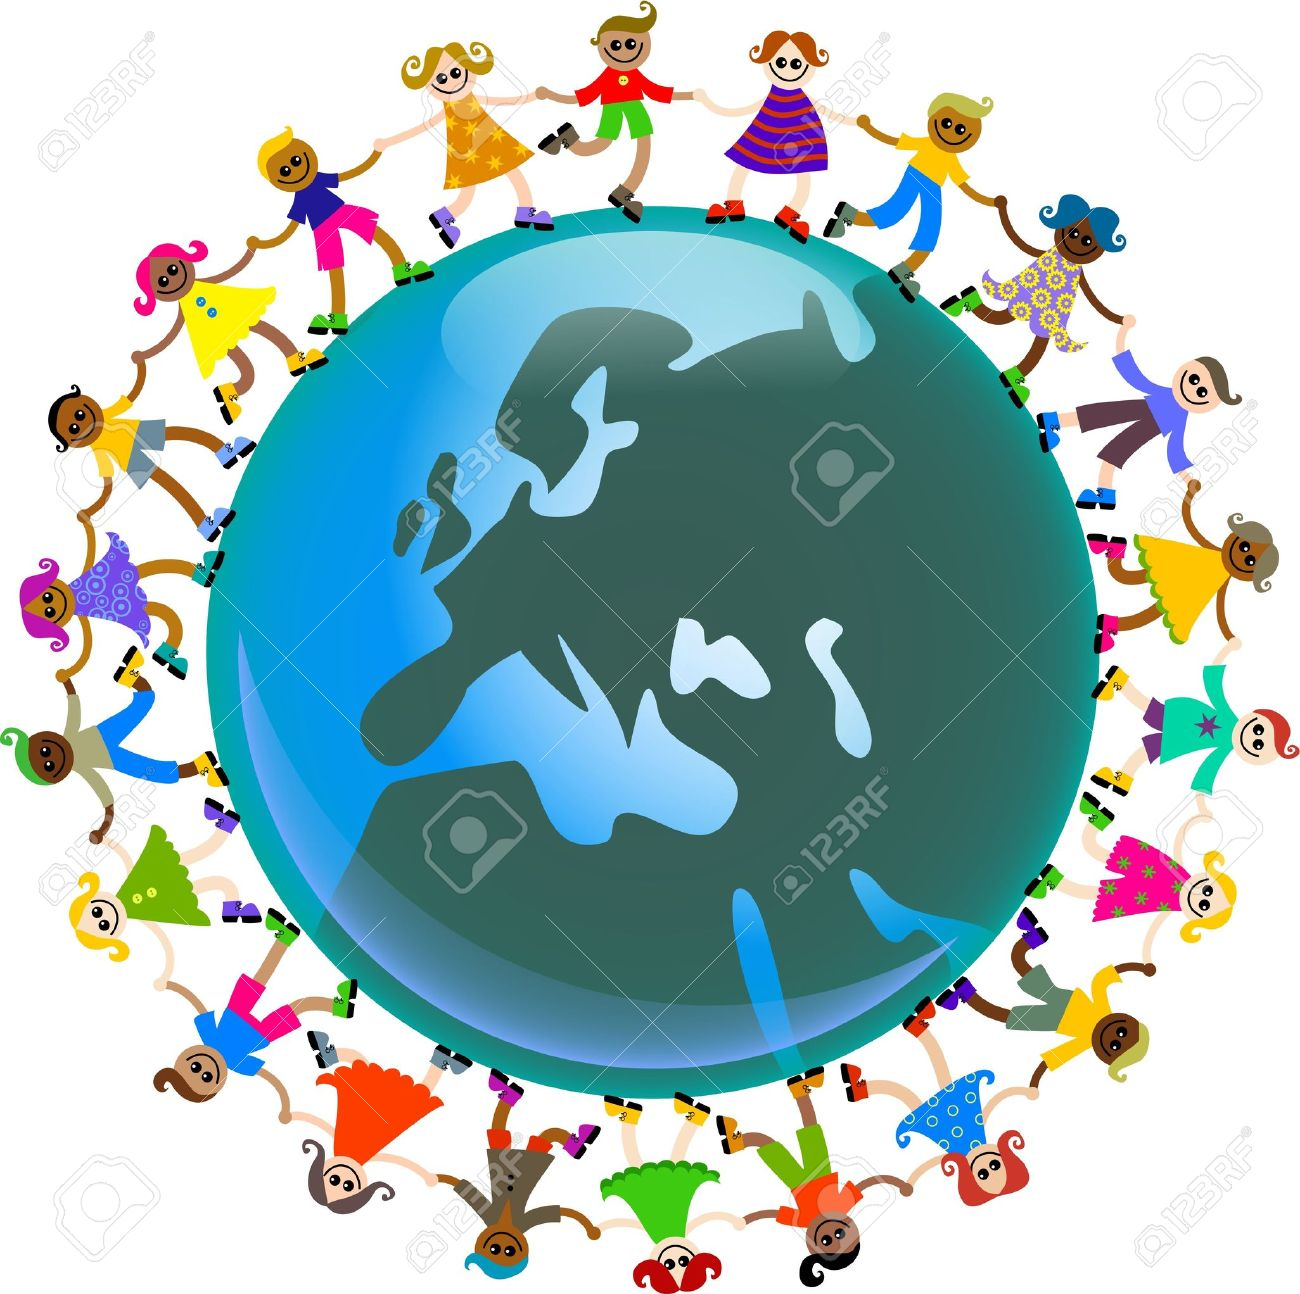 A happy and diverse group of children holding hands around a globe featuring a map of Europe. - 5056945